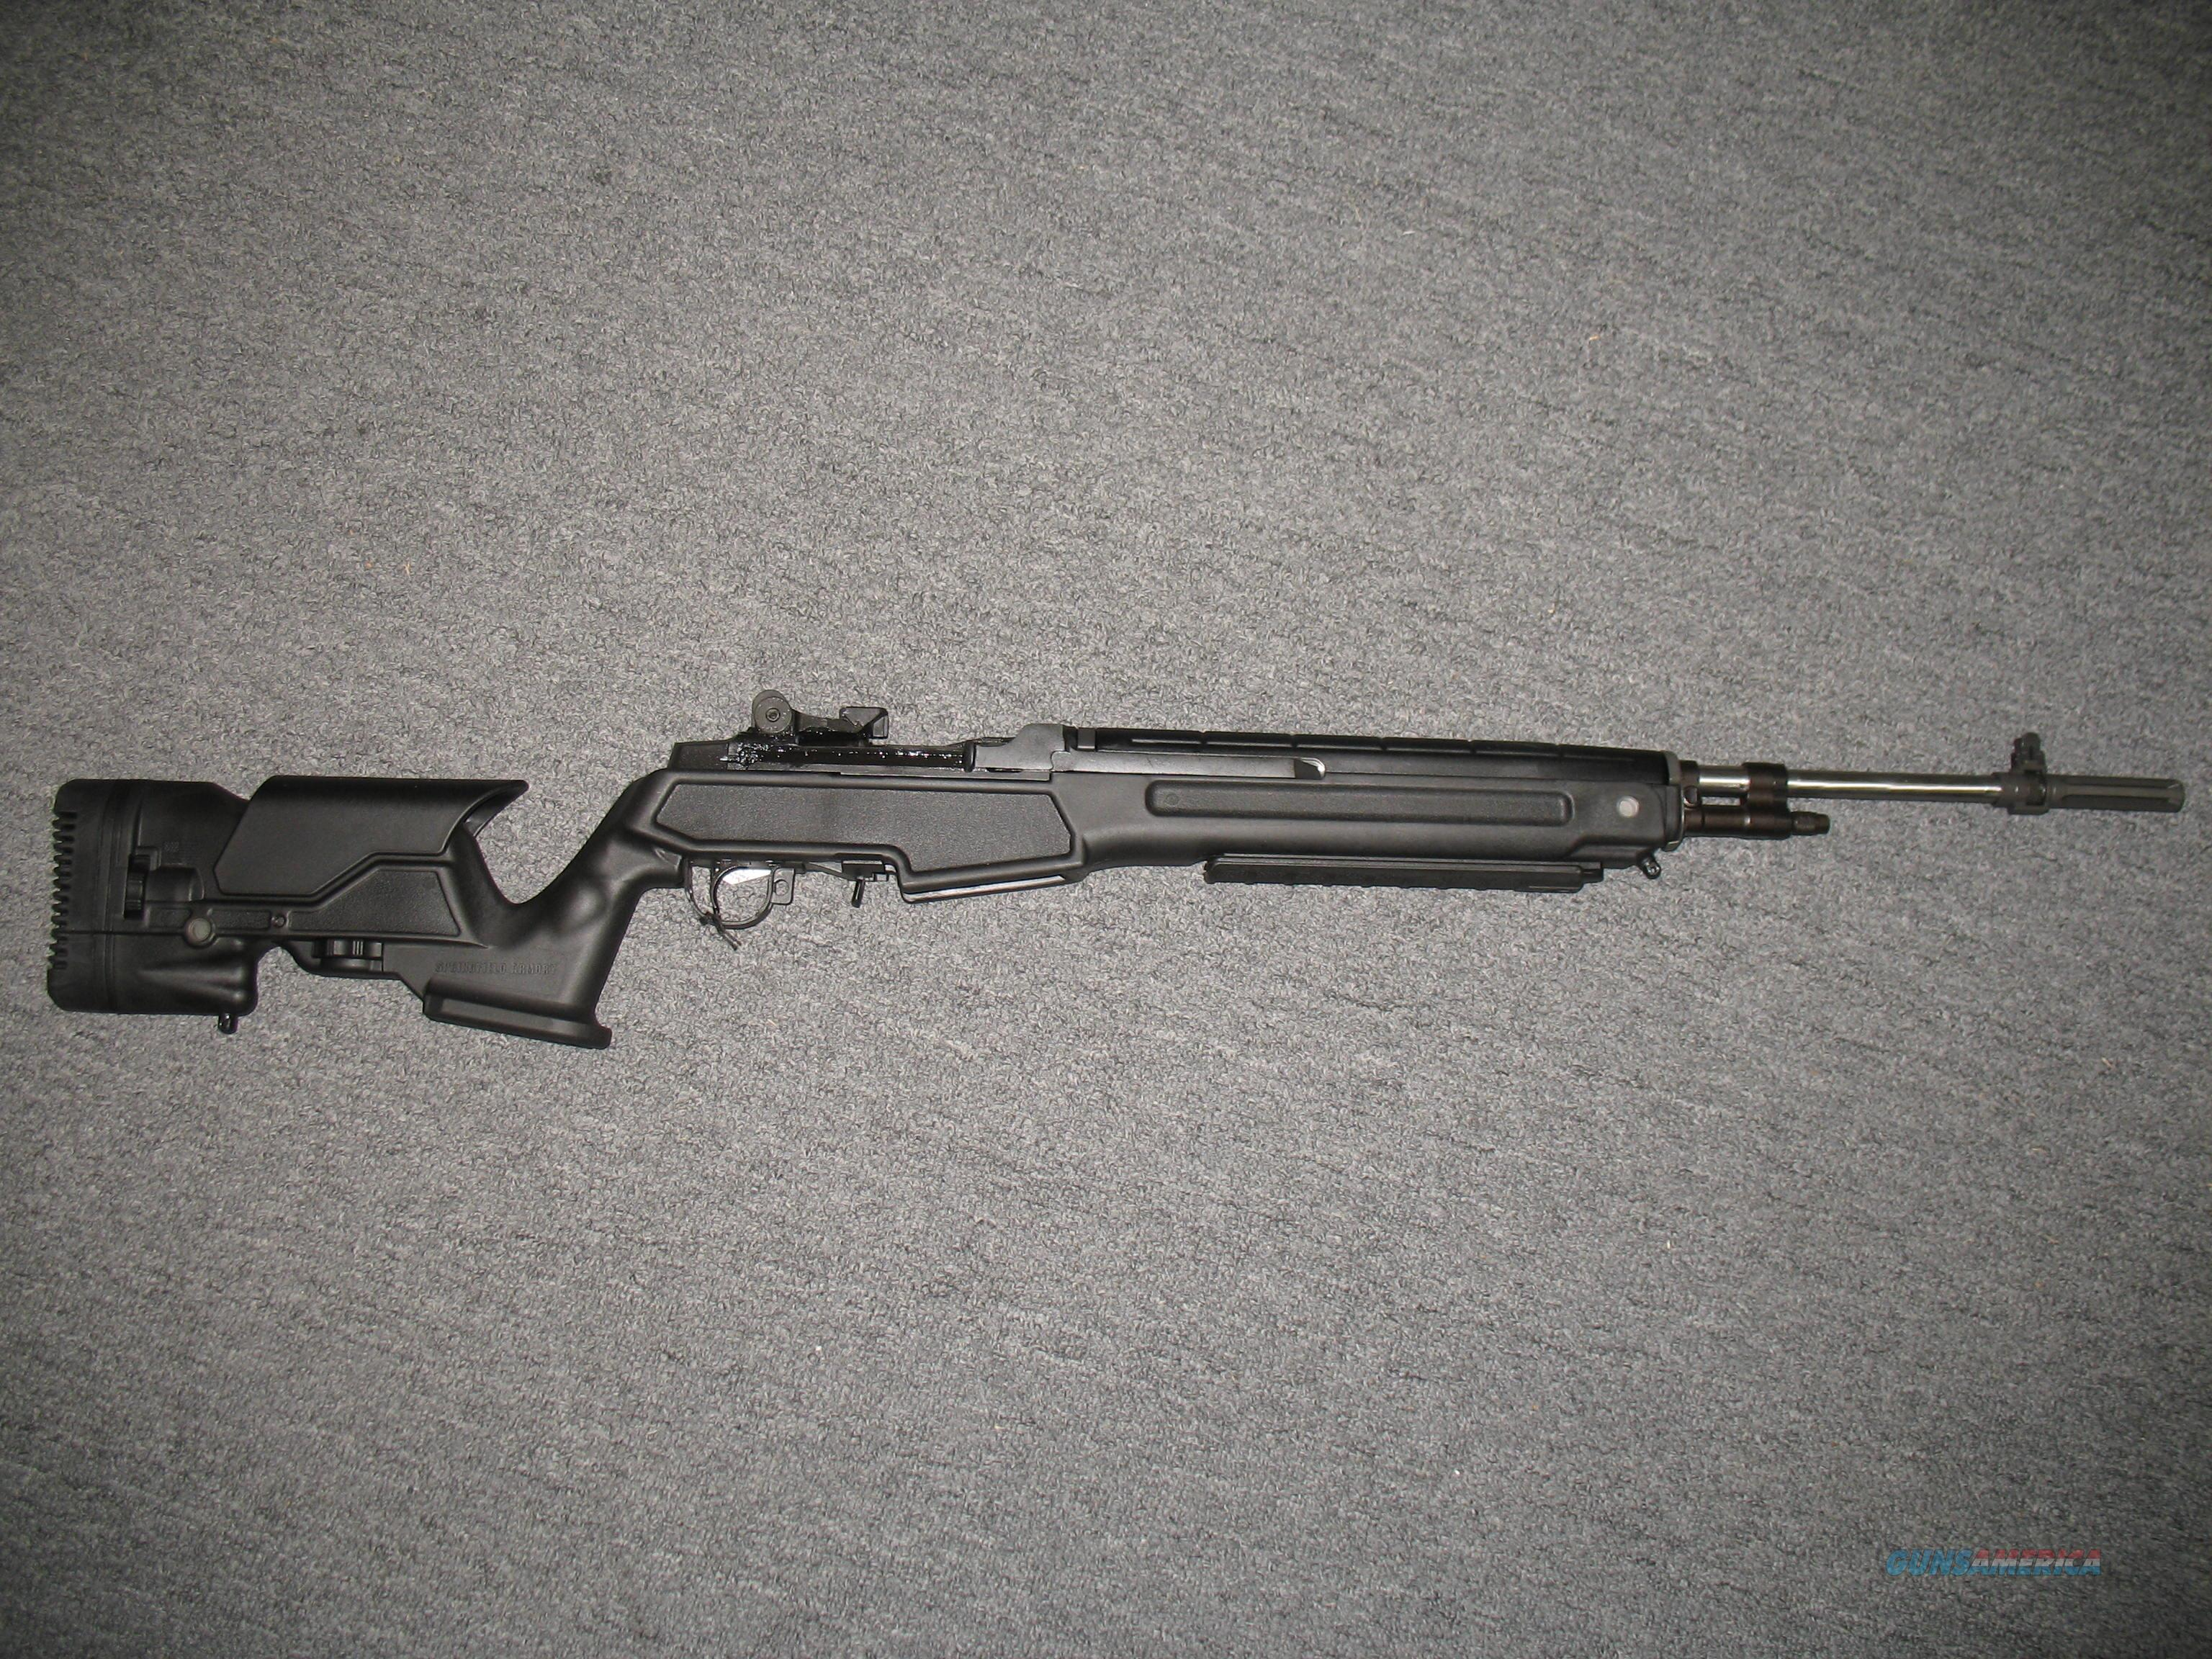 Springfield Armory M1A (MP9826) w/Precision Archangel stock assembly   Guns > Rifles > Springfield Armory Rifles > M1A/M14